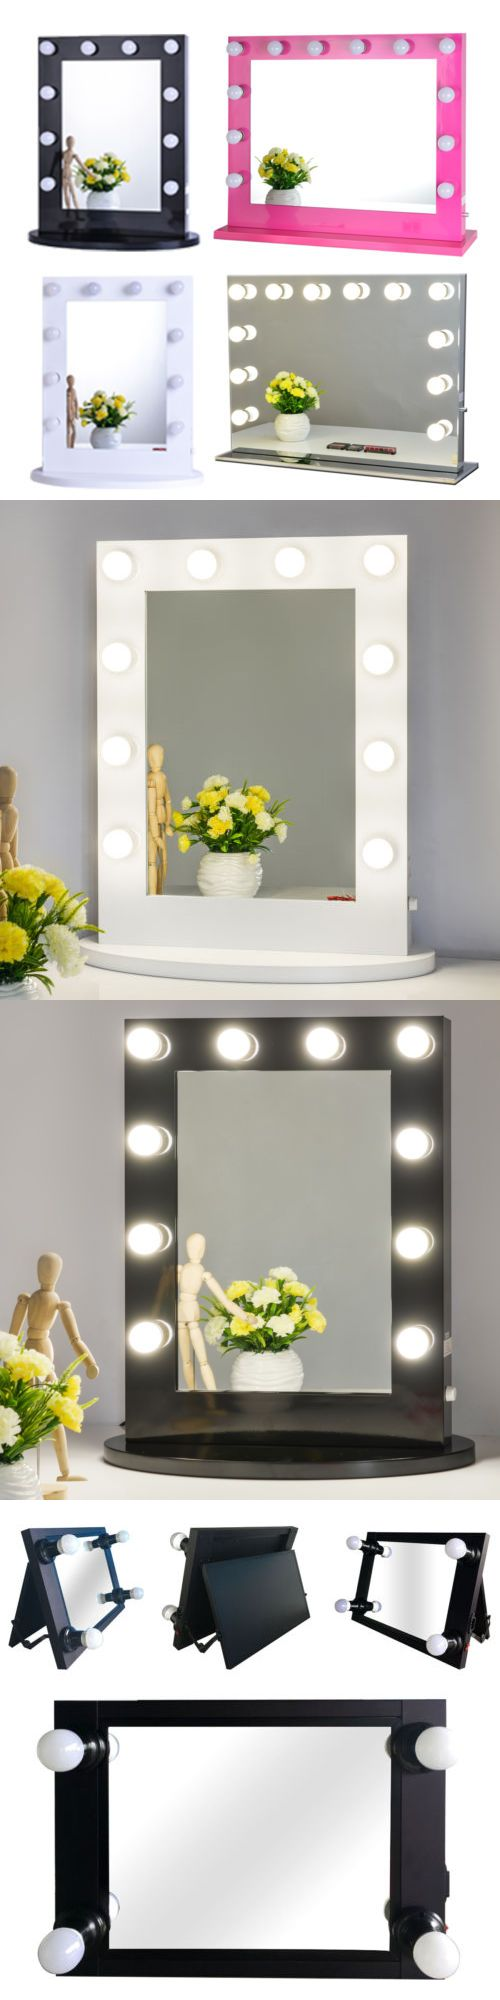 Makeup Mirrors: Hollywood Makeup Vanity Mirror With Light Aluminum Stage Beauty Mirror -> BUY IT NOW ONLY: $225.99 on eBay!